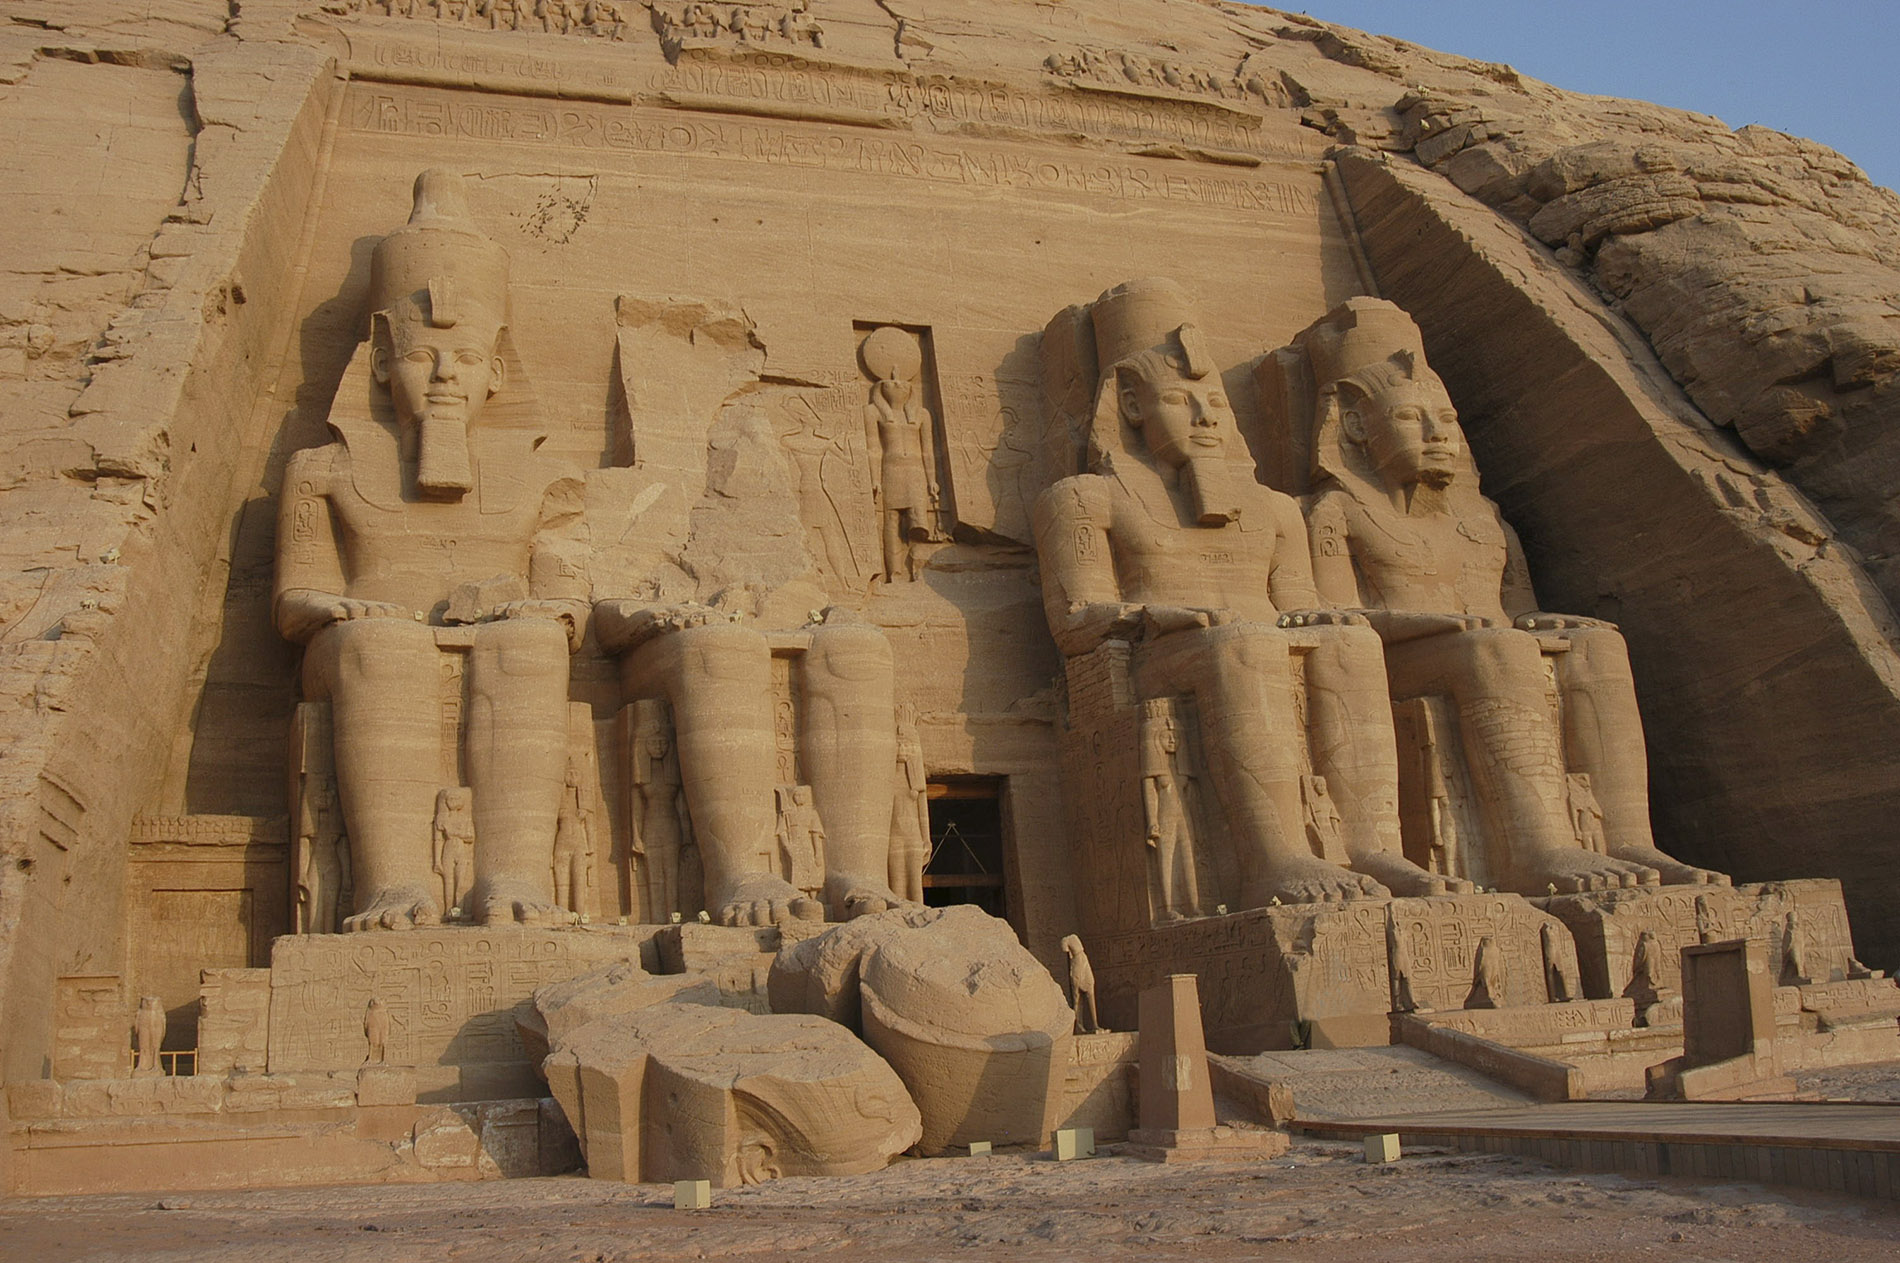 a stone building with Abu Simbel temples in the background